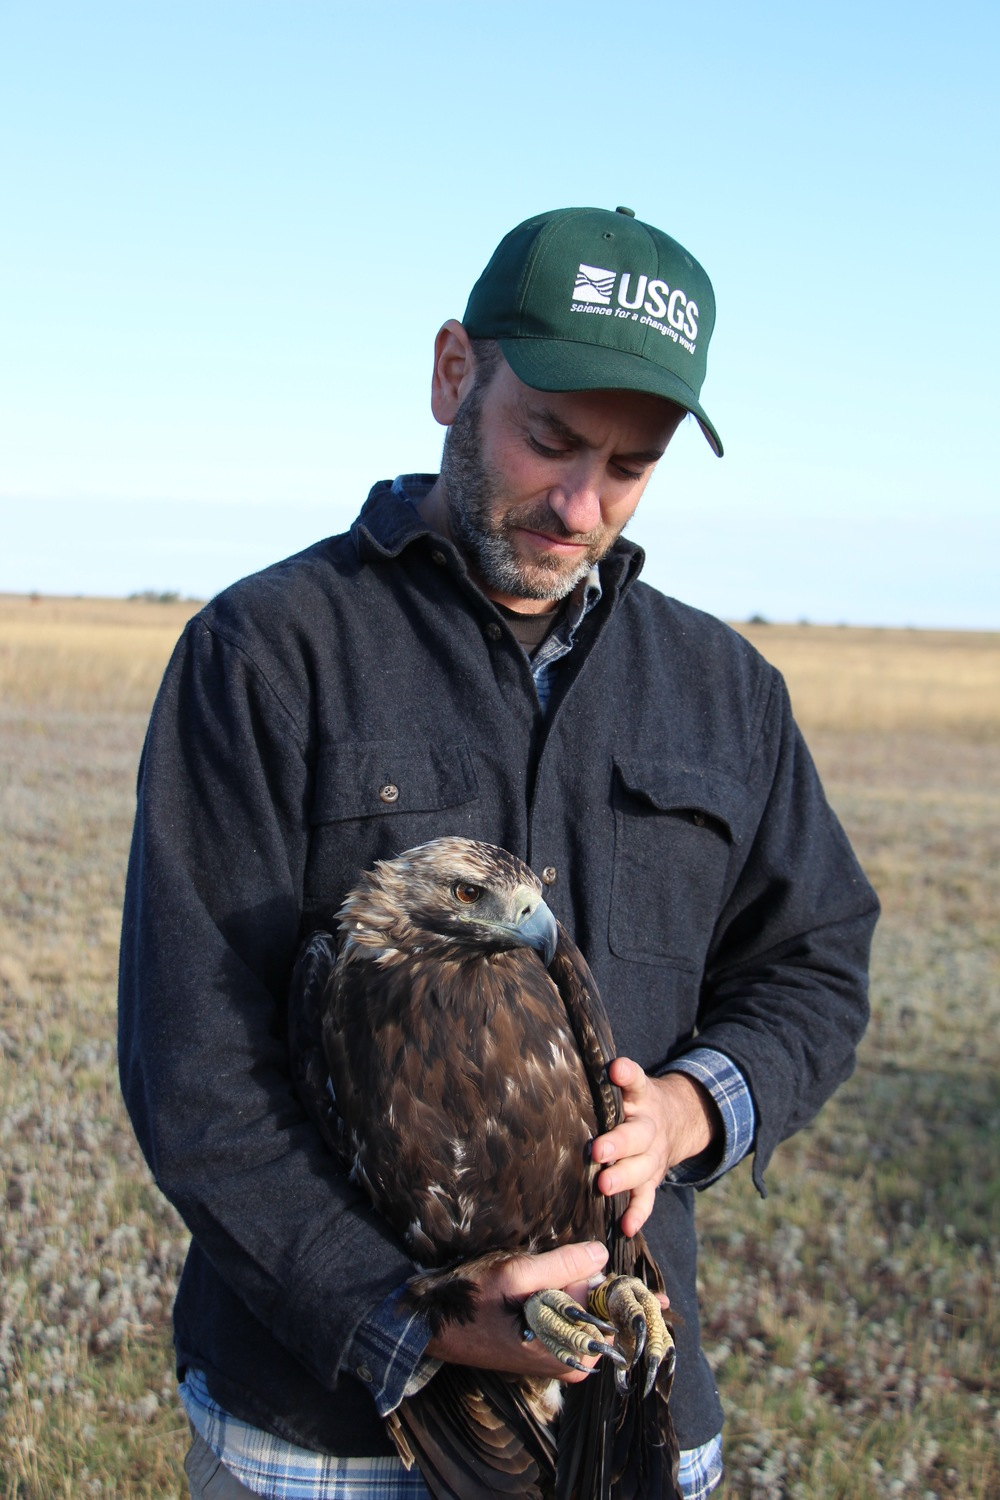 Dr. Todd Katzner with the Imperial eagle